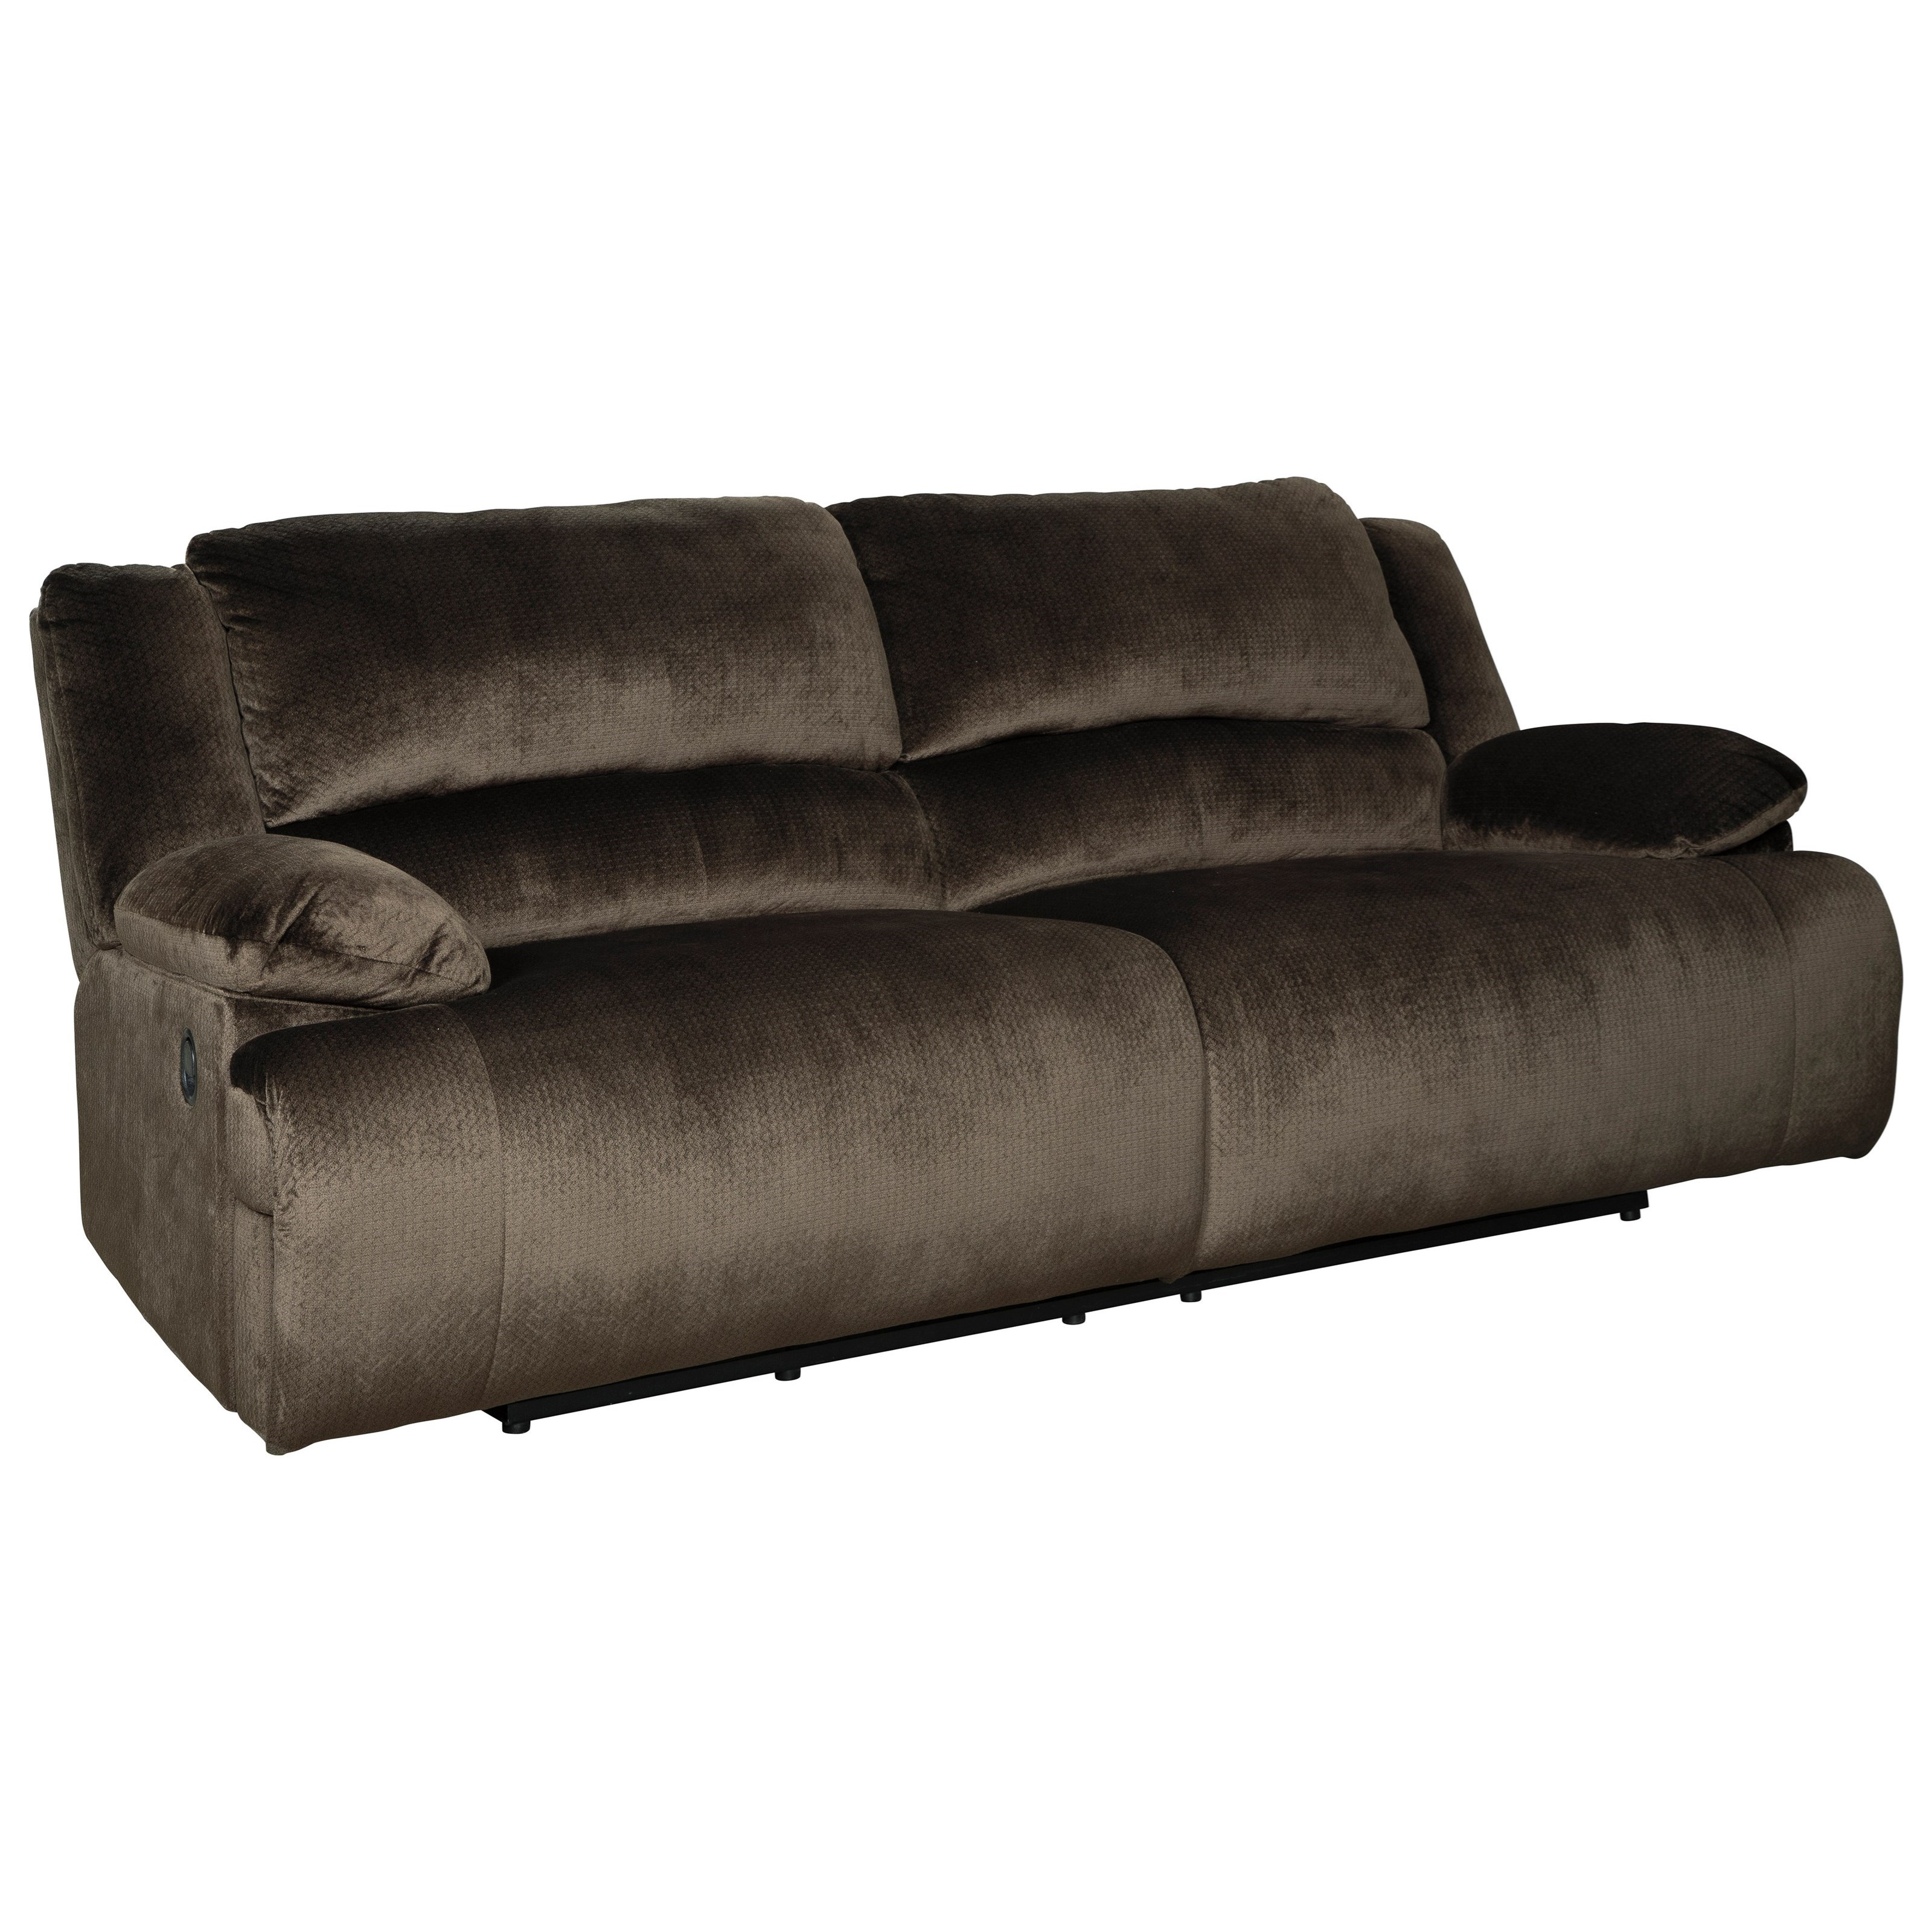 Clonmel 2 Seat Reclining Sofa by Signature Design by Ashley at Sparks HomeStore